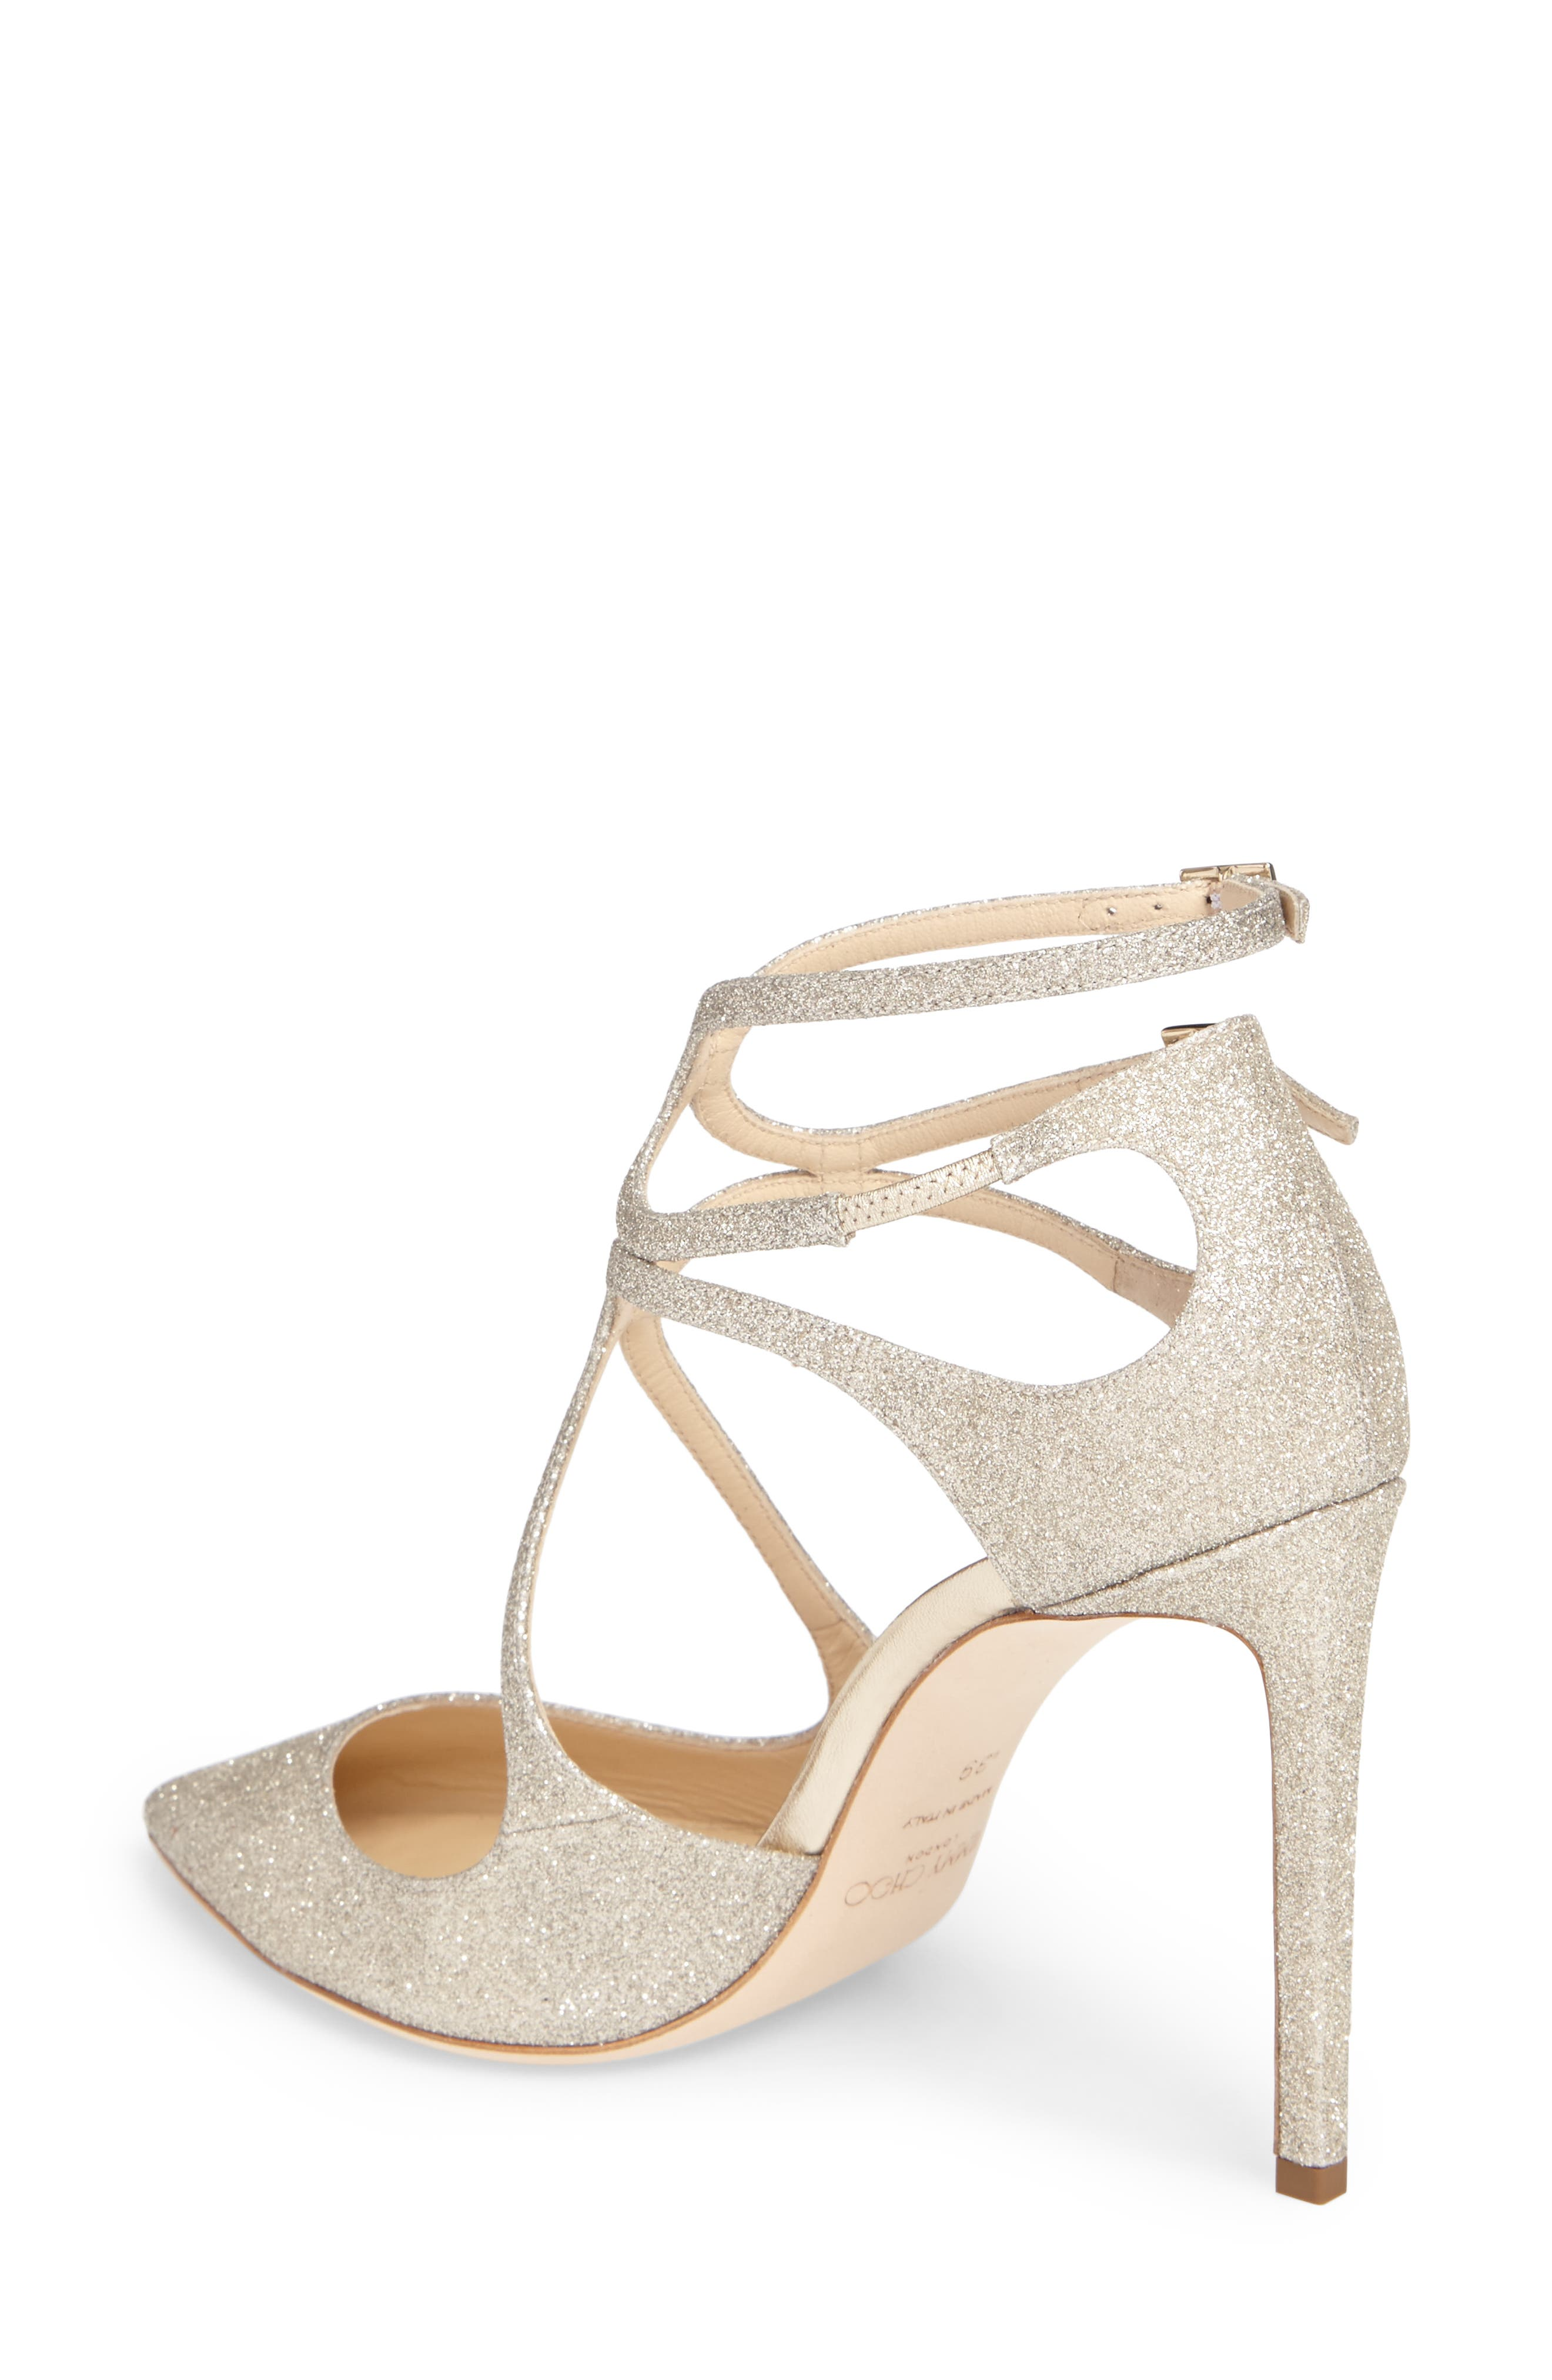 Lancer Strappy Glitter Pump,                             Alternate thumbnail 2, color,                             040